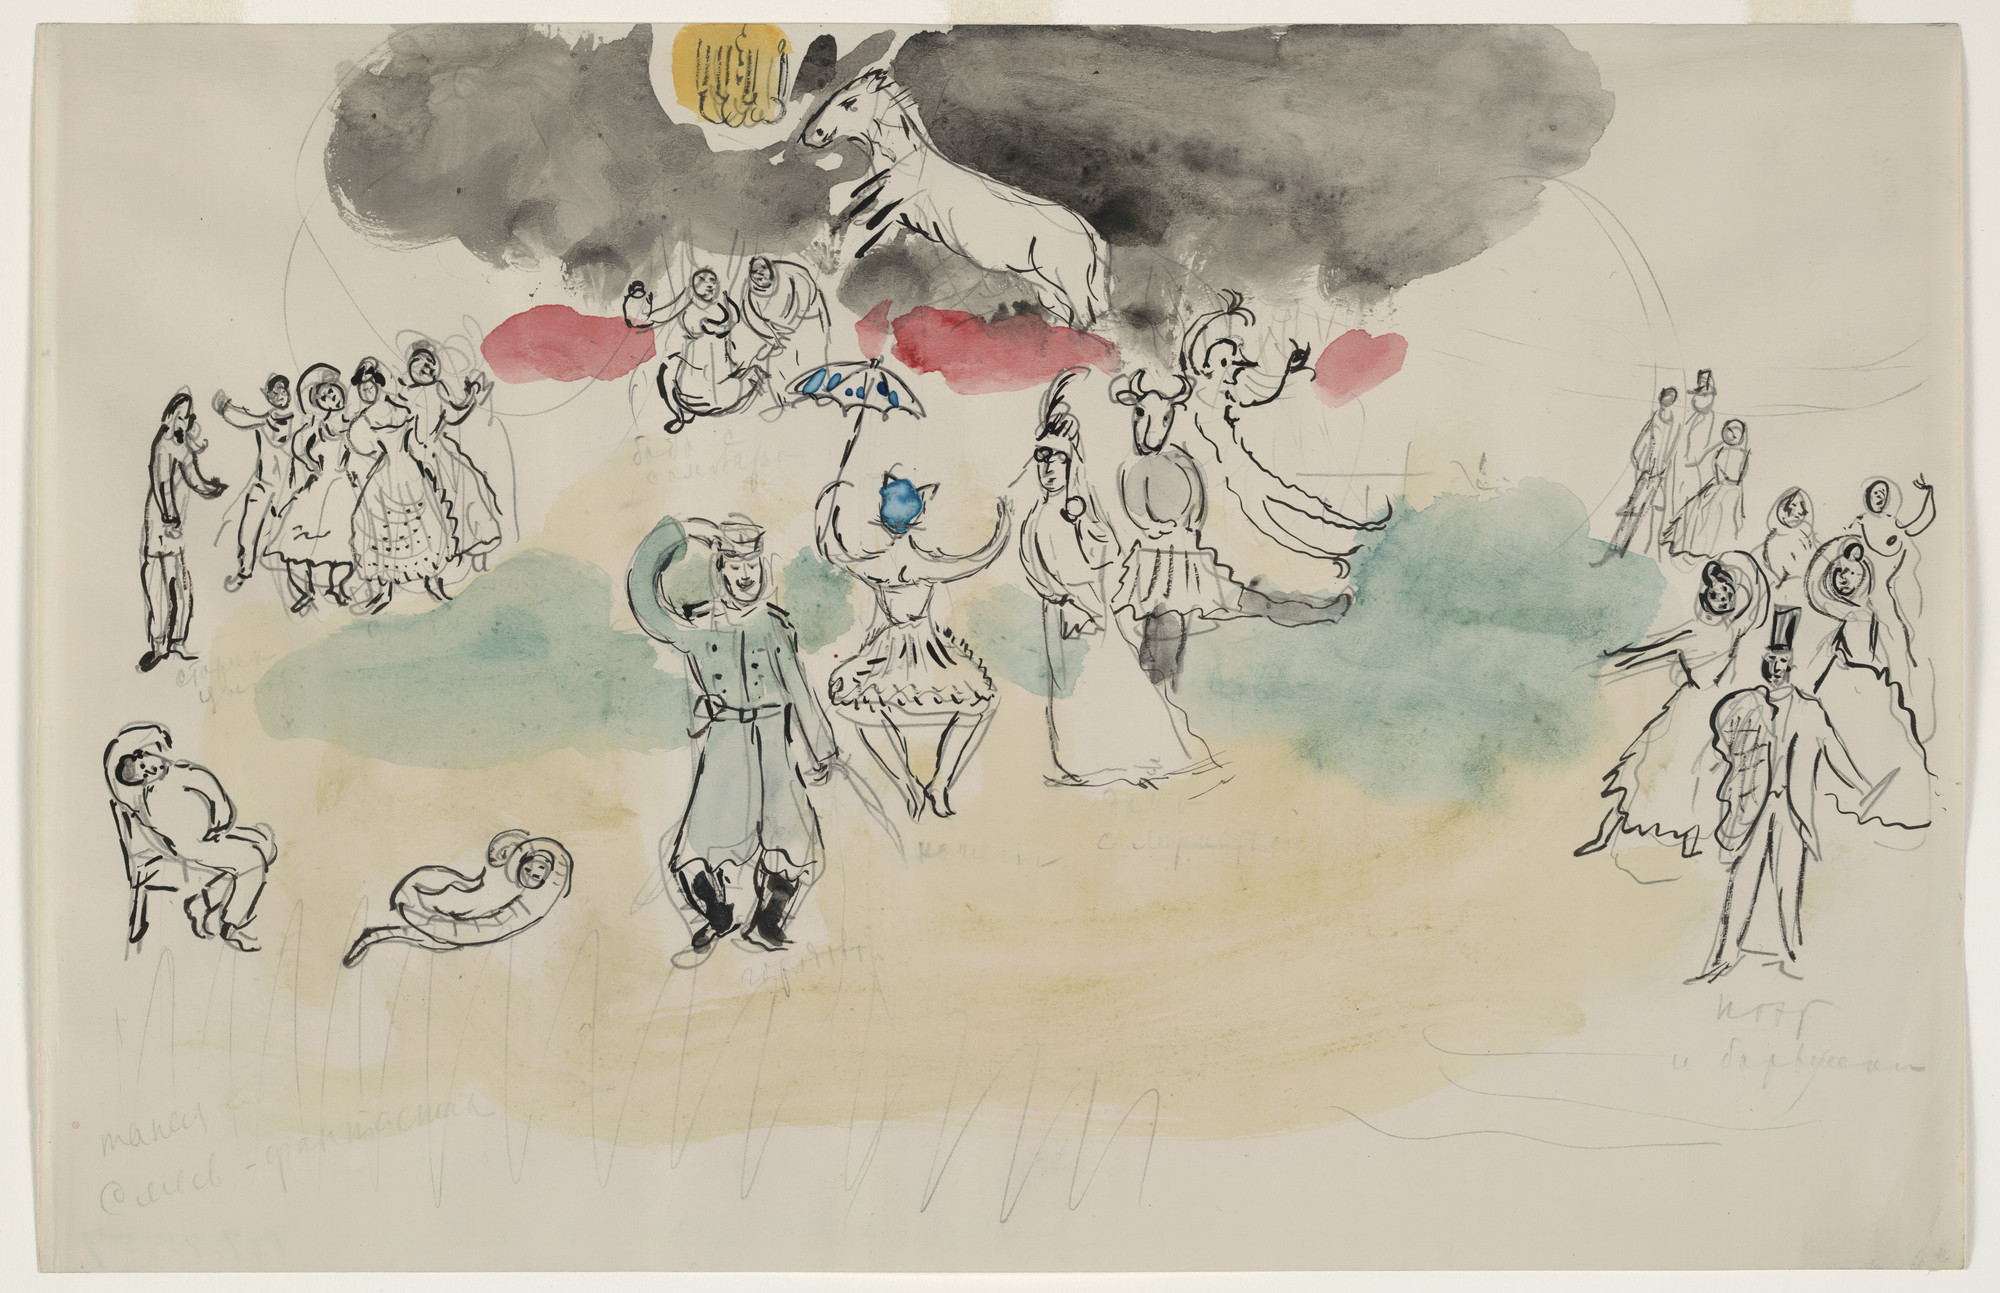 Marc Chagall. Aleko's Fantasy. Sketch for the choreographer for Scene IV of the ballet Aleko. (1942)